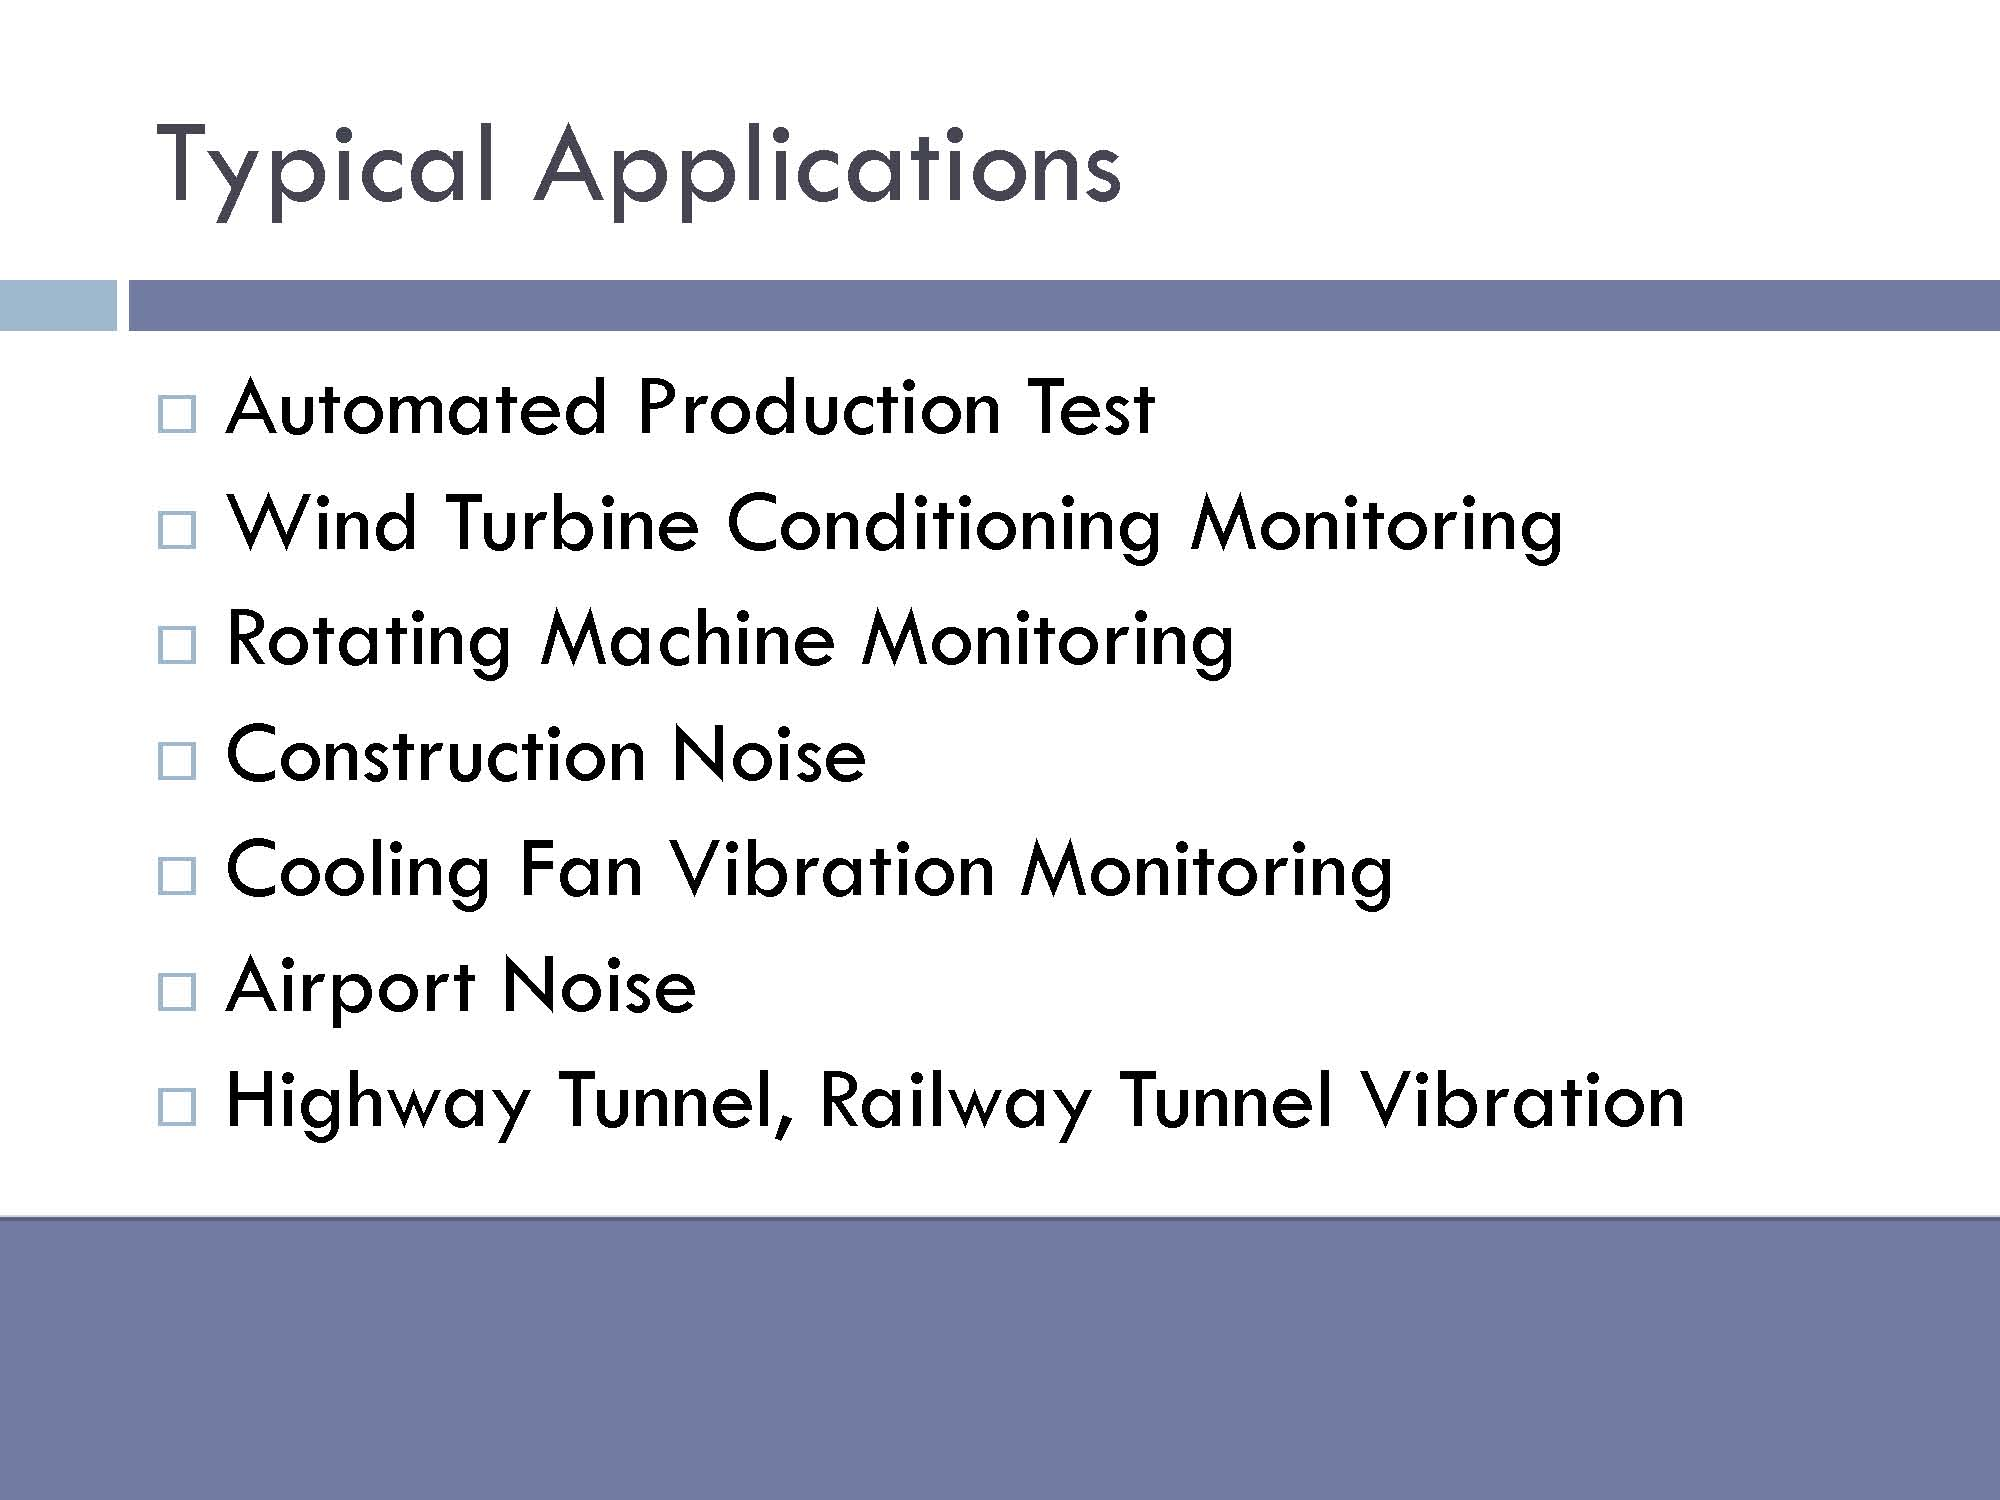 Typical Applications: Automated production test, wind turbine conditioning monitoring, rotating machine monitoring, construction noise, cooling fan vibration monitoring, airport noise, highway tunnel, railway tunnel vibration.